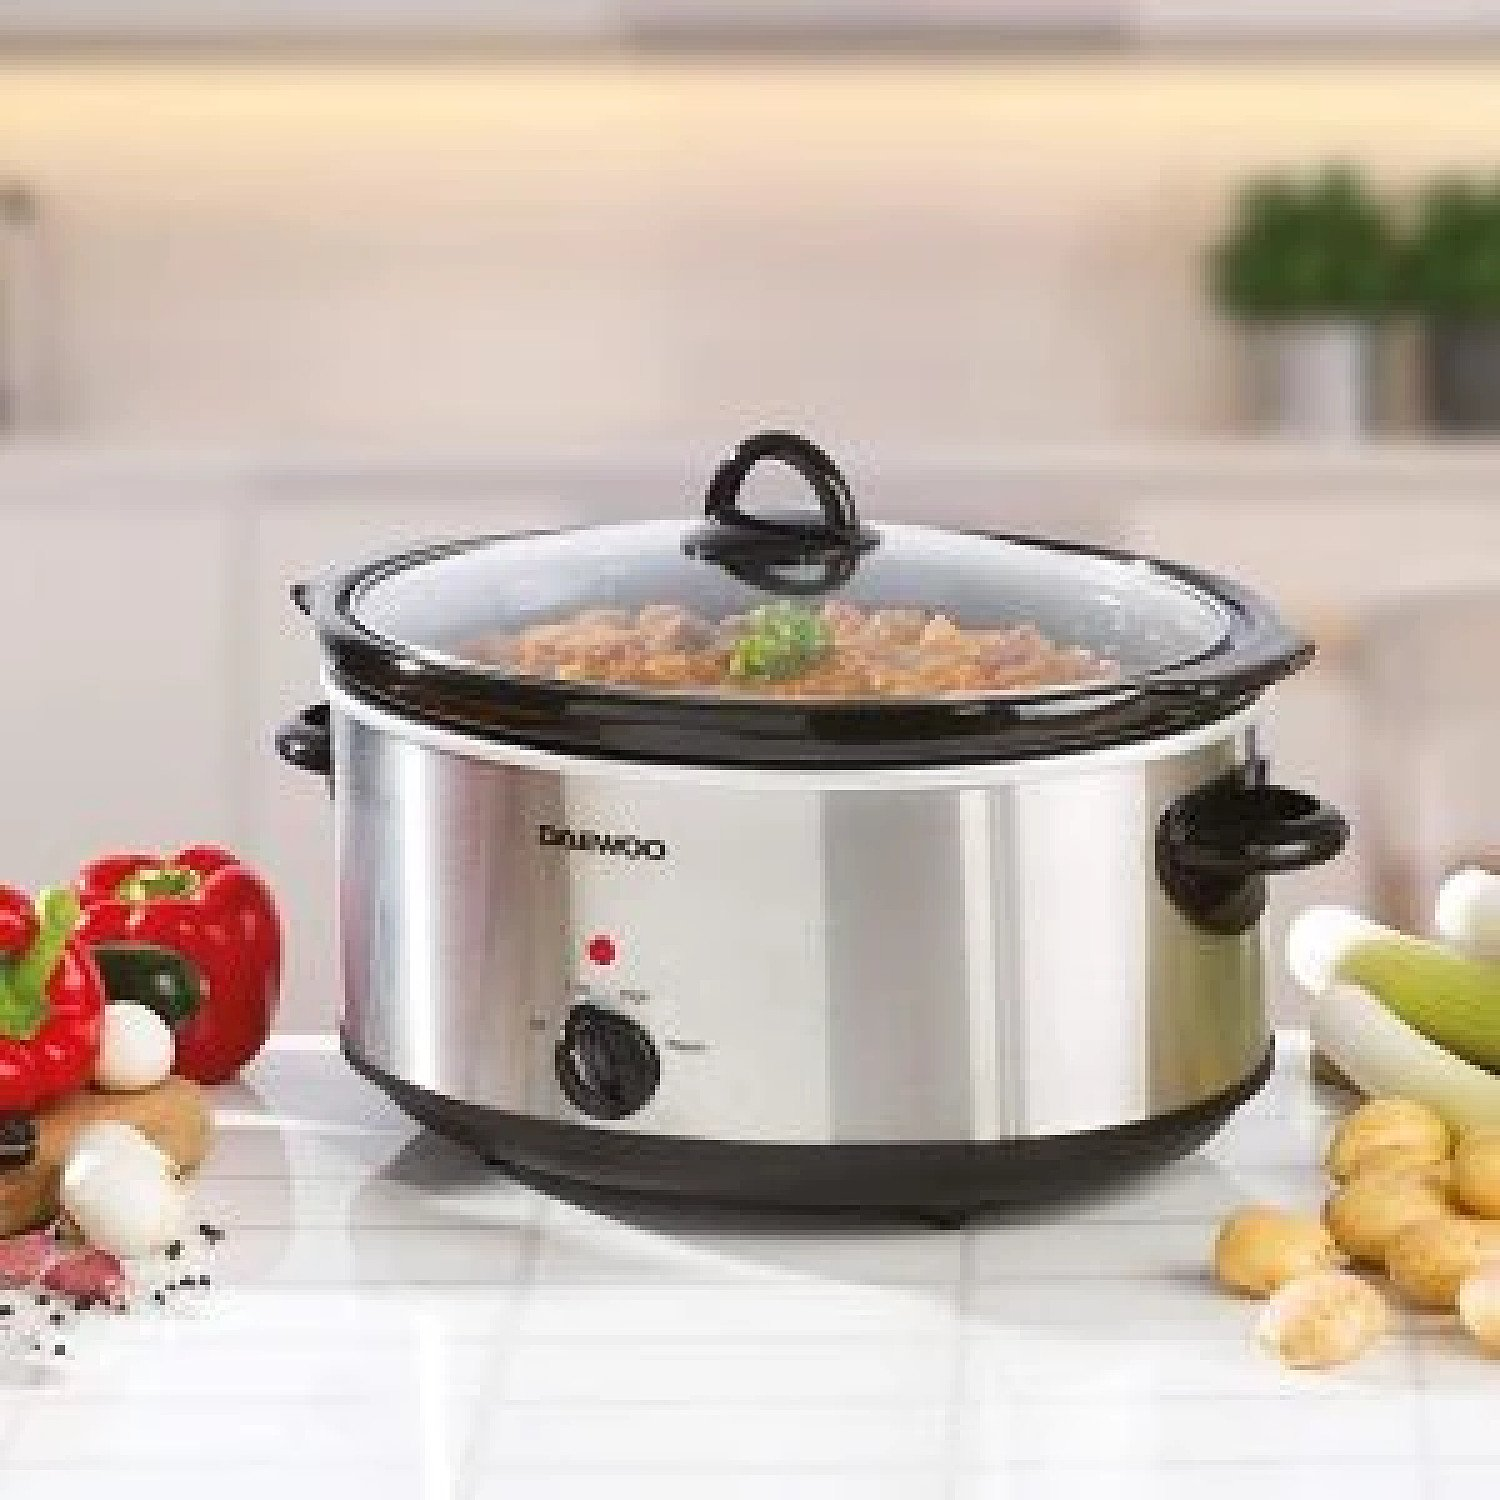 Daewoo 6.5L Slow Cooker | Stainless Steel | 3 Heat Settings | Dishwasher Safe Pot & Lid Free Postage